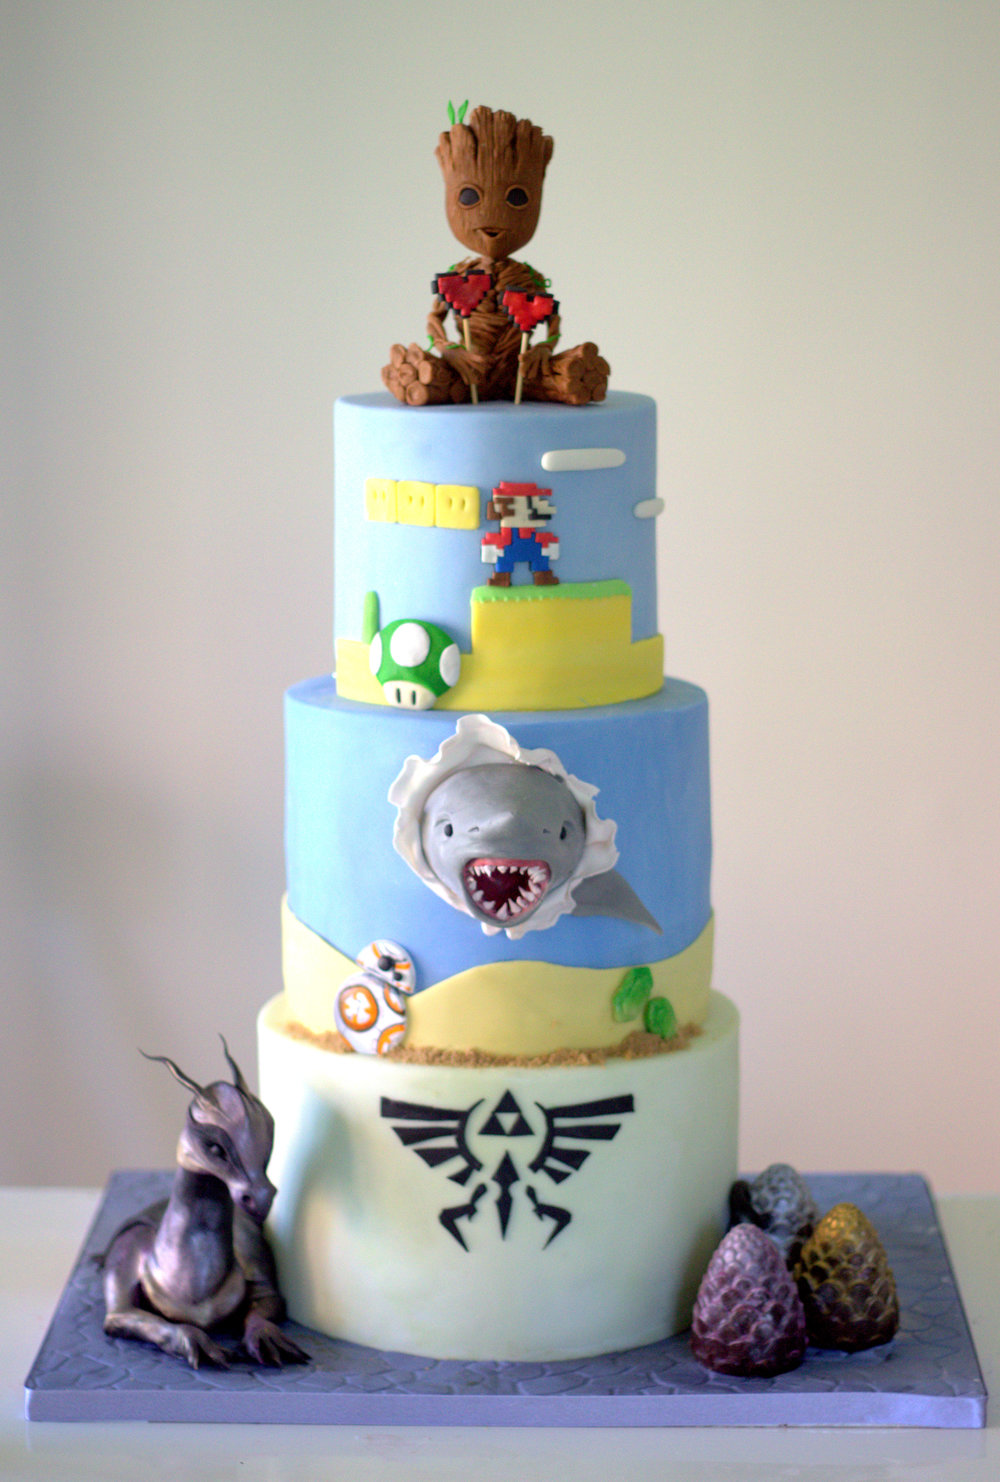 Wedding Cake Geek.jpg